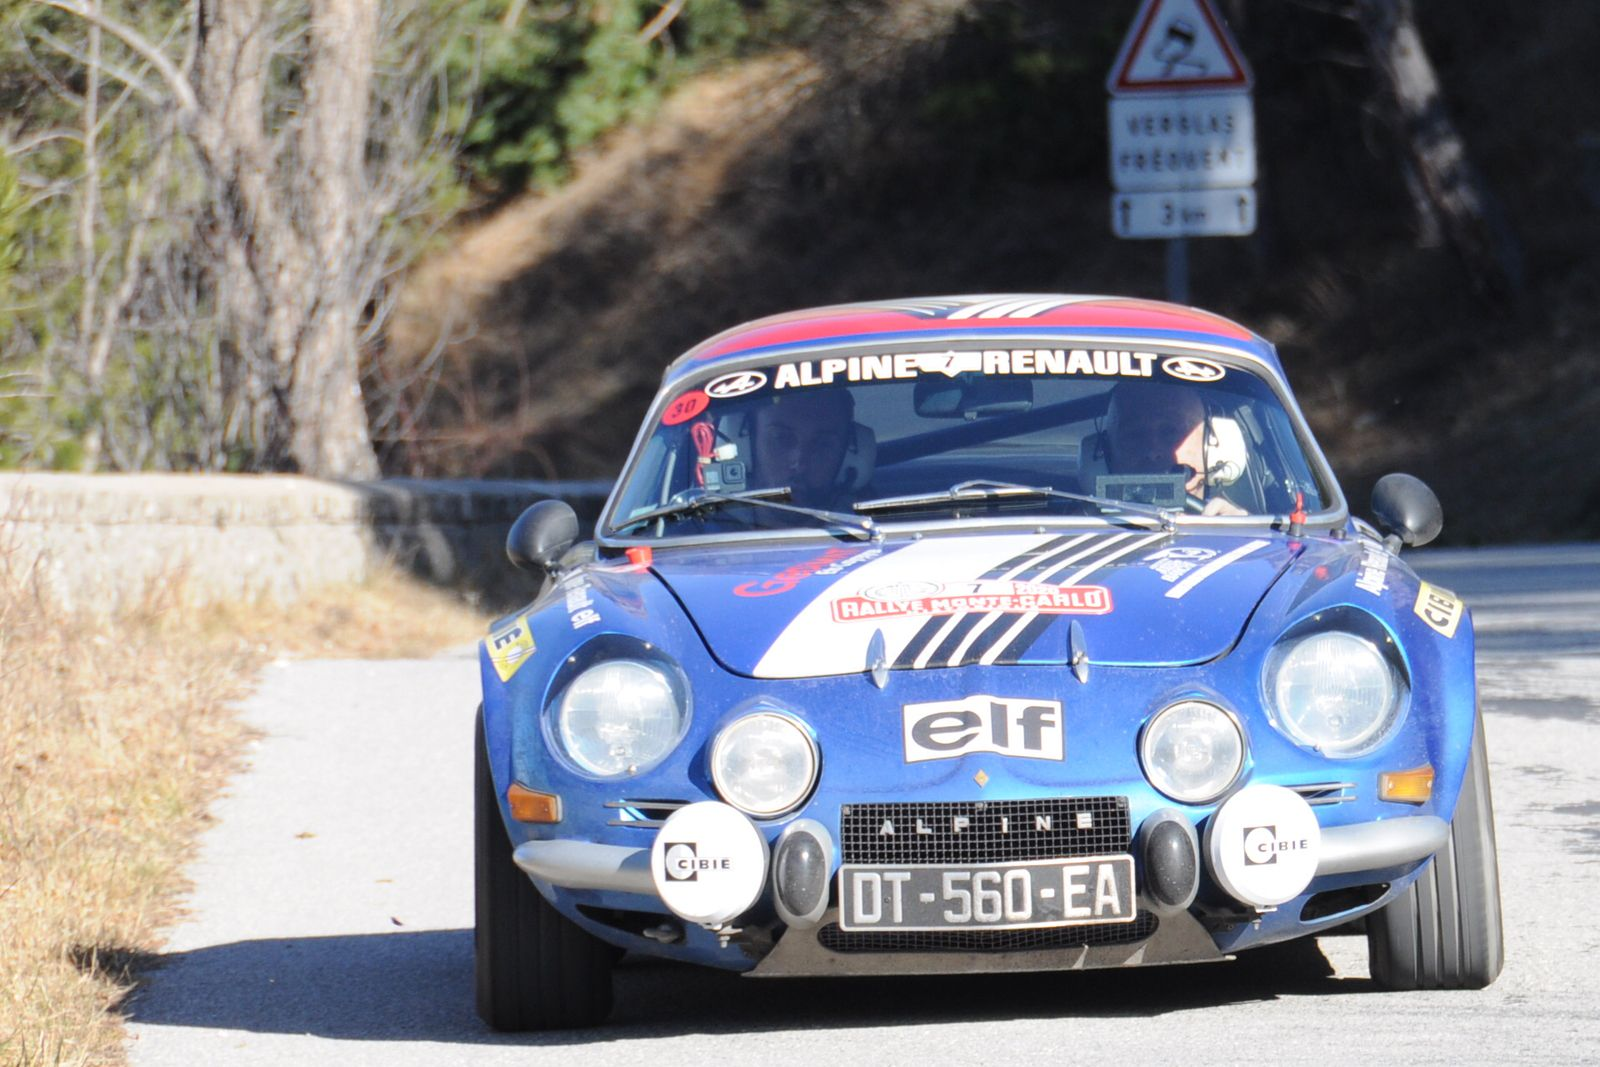 Alpine A110 1600 S 1973 ..... Photo : R.S.